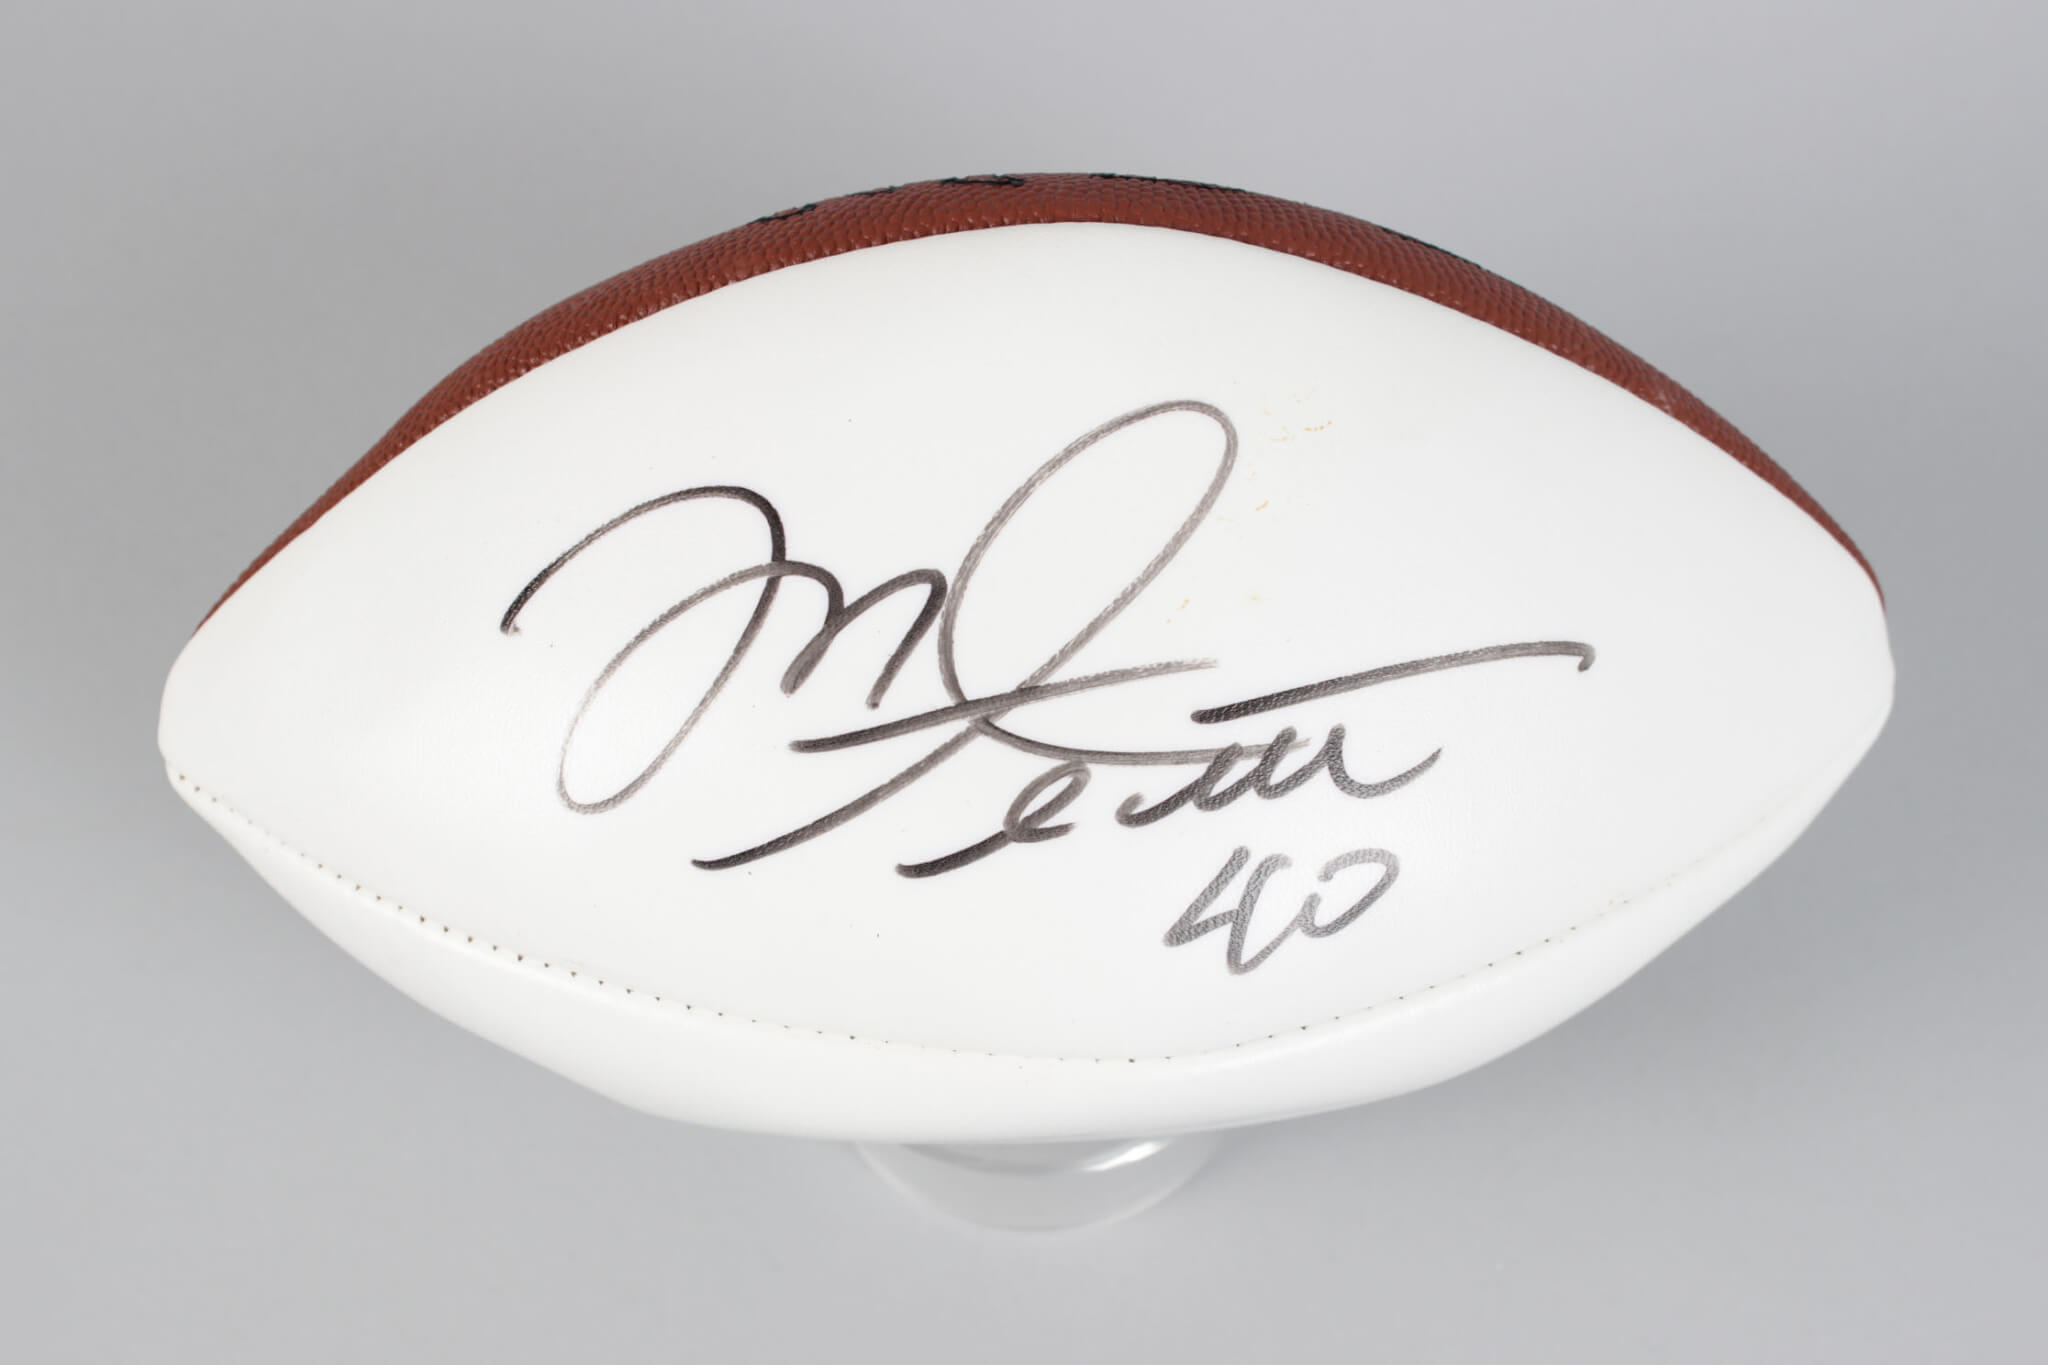 newest collection f1d09 409bc Tampa Bay Bucs - Mike Alstott Signed & Inscribed